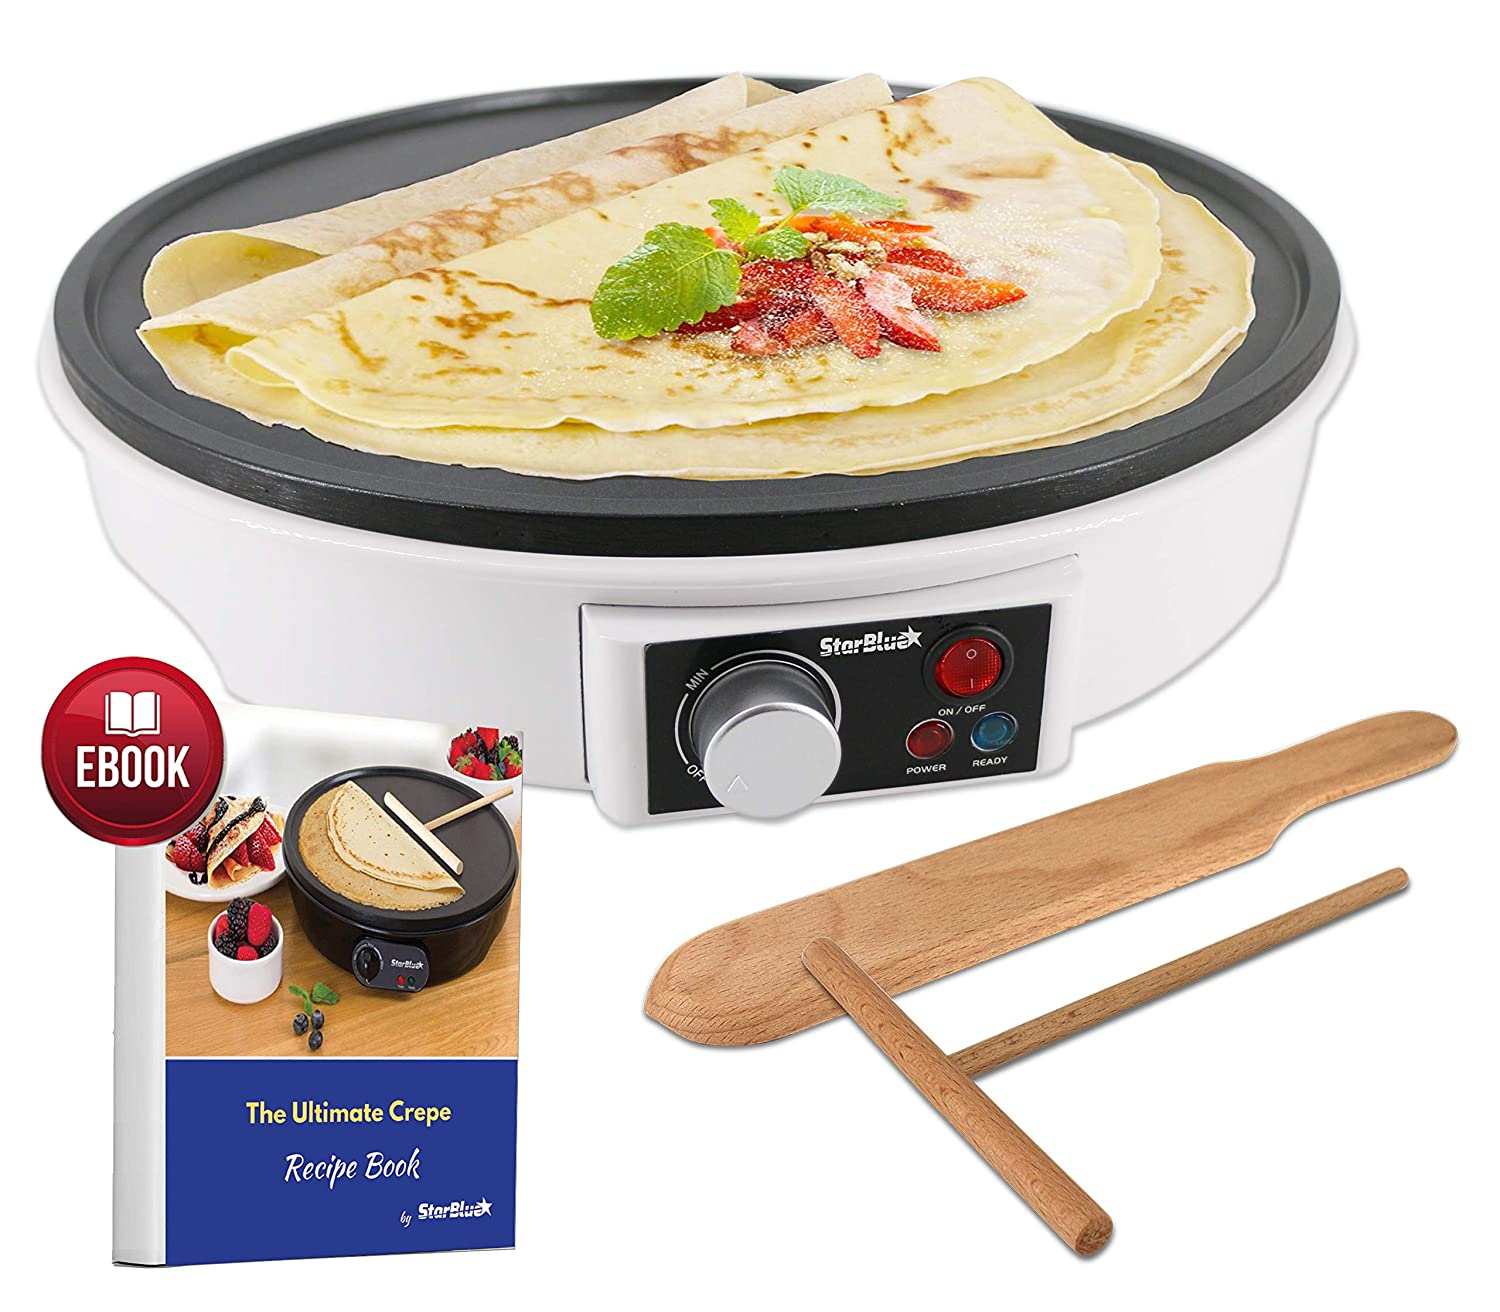 "12"" Electric Crepe Maker by StarBlue with FREE Recipes e-book and Wooden Spatula - Nonstick and Portable Pan, Compact, Easy Clean with On/off button AC 120V 50/60Hz 1000W"